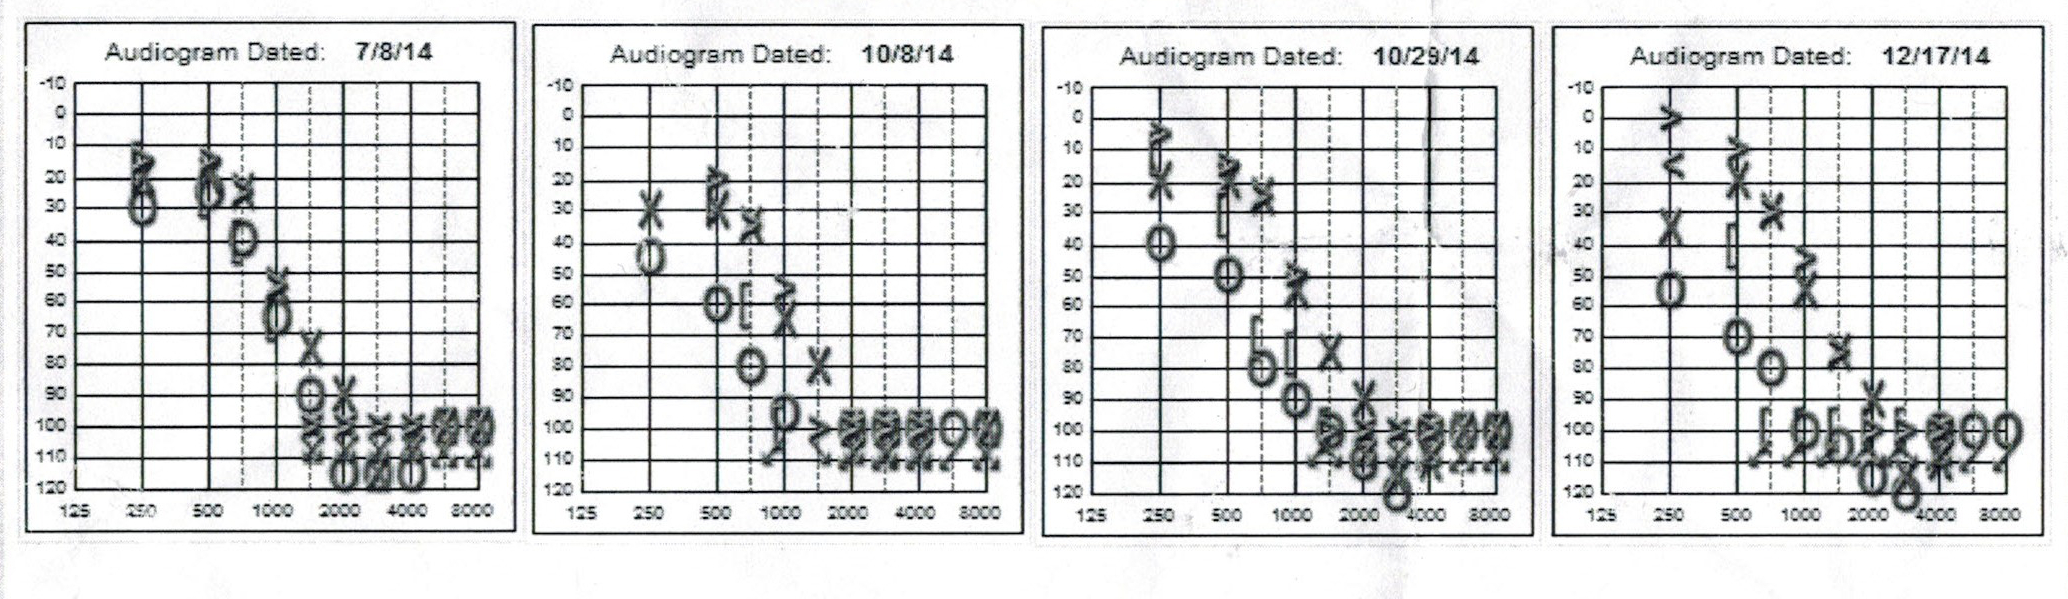 My Hearing Test CI Pre-Op and Post-Op Comparison